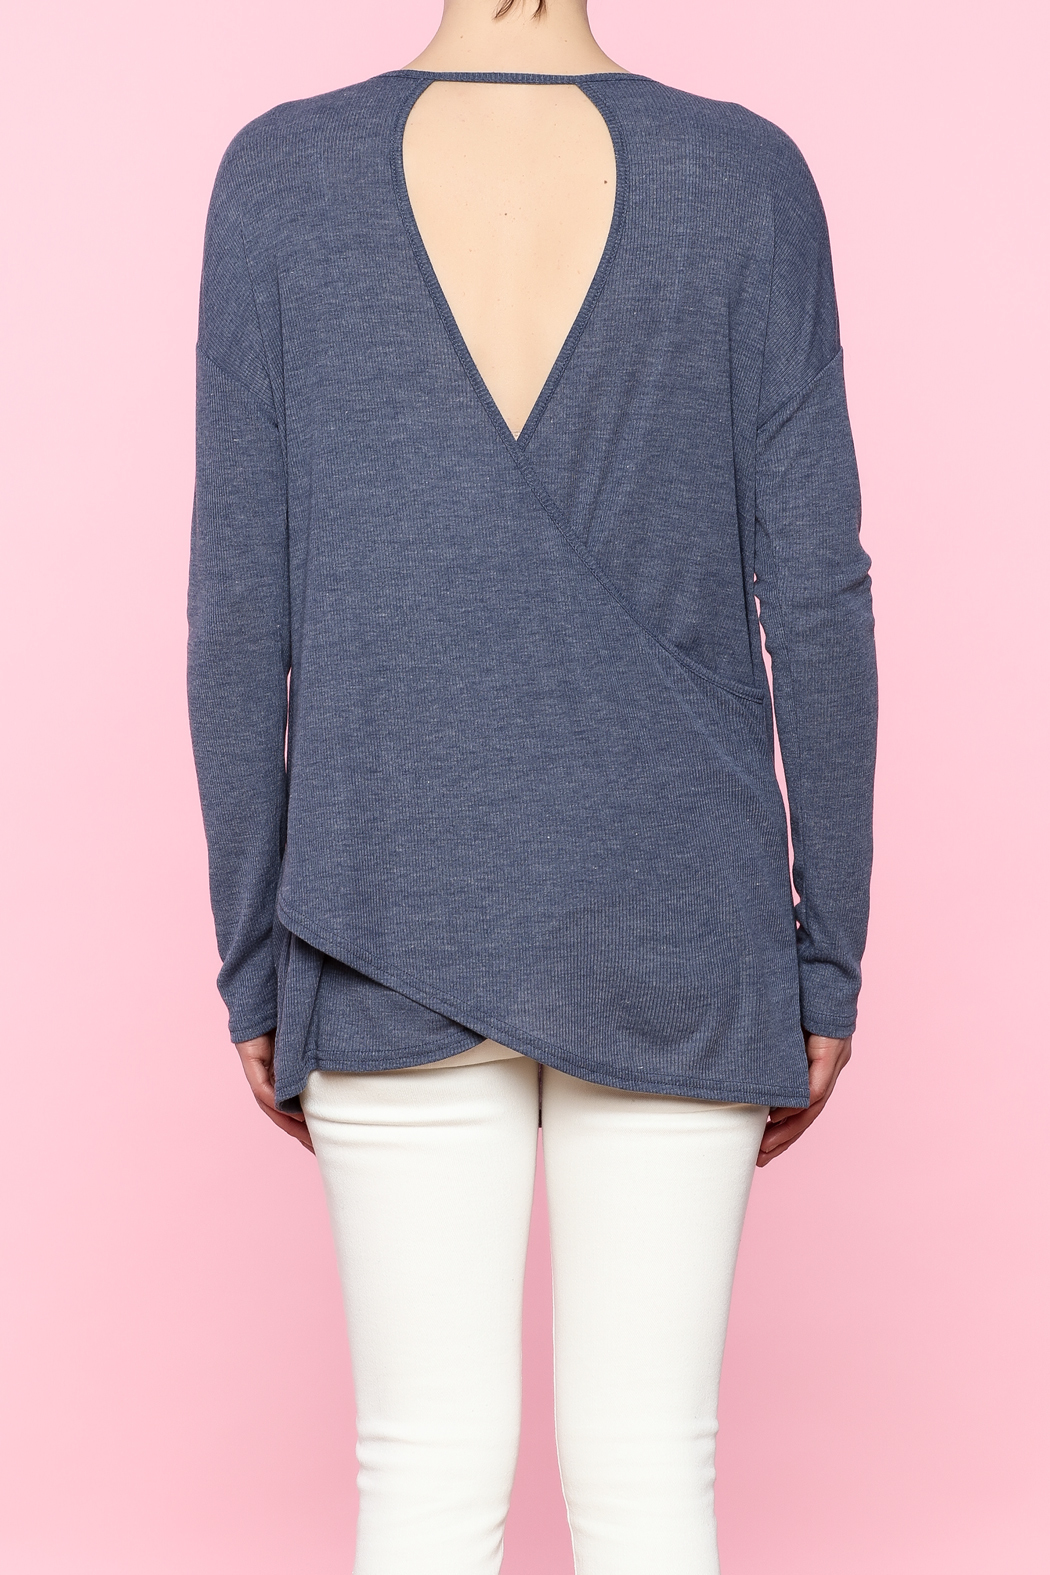 She + Sky Navy Cutout Top - Back Cropped Image